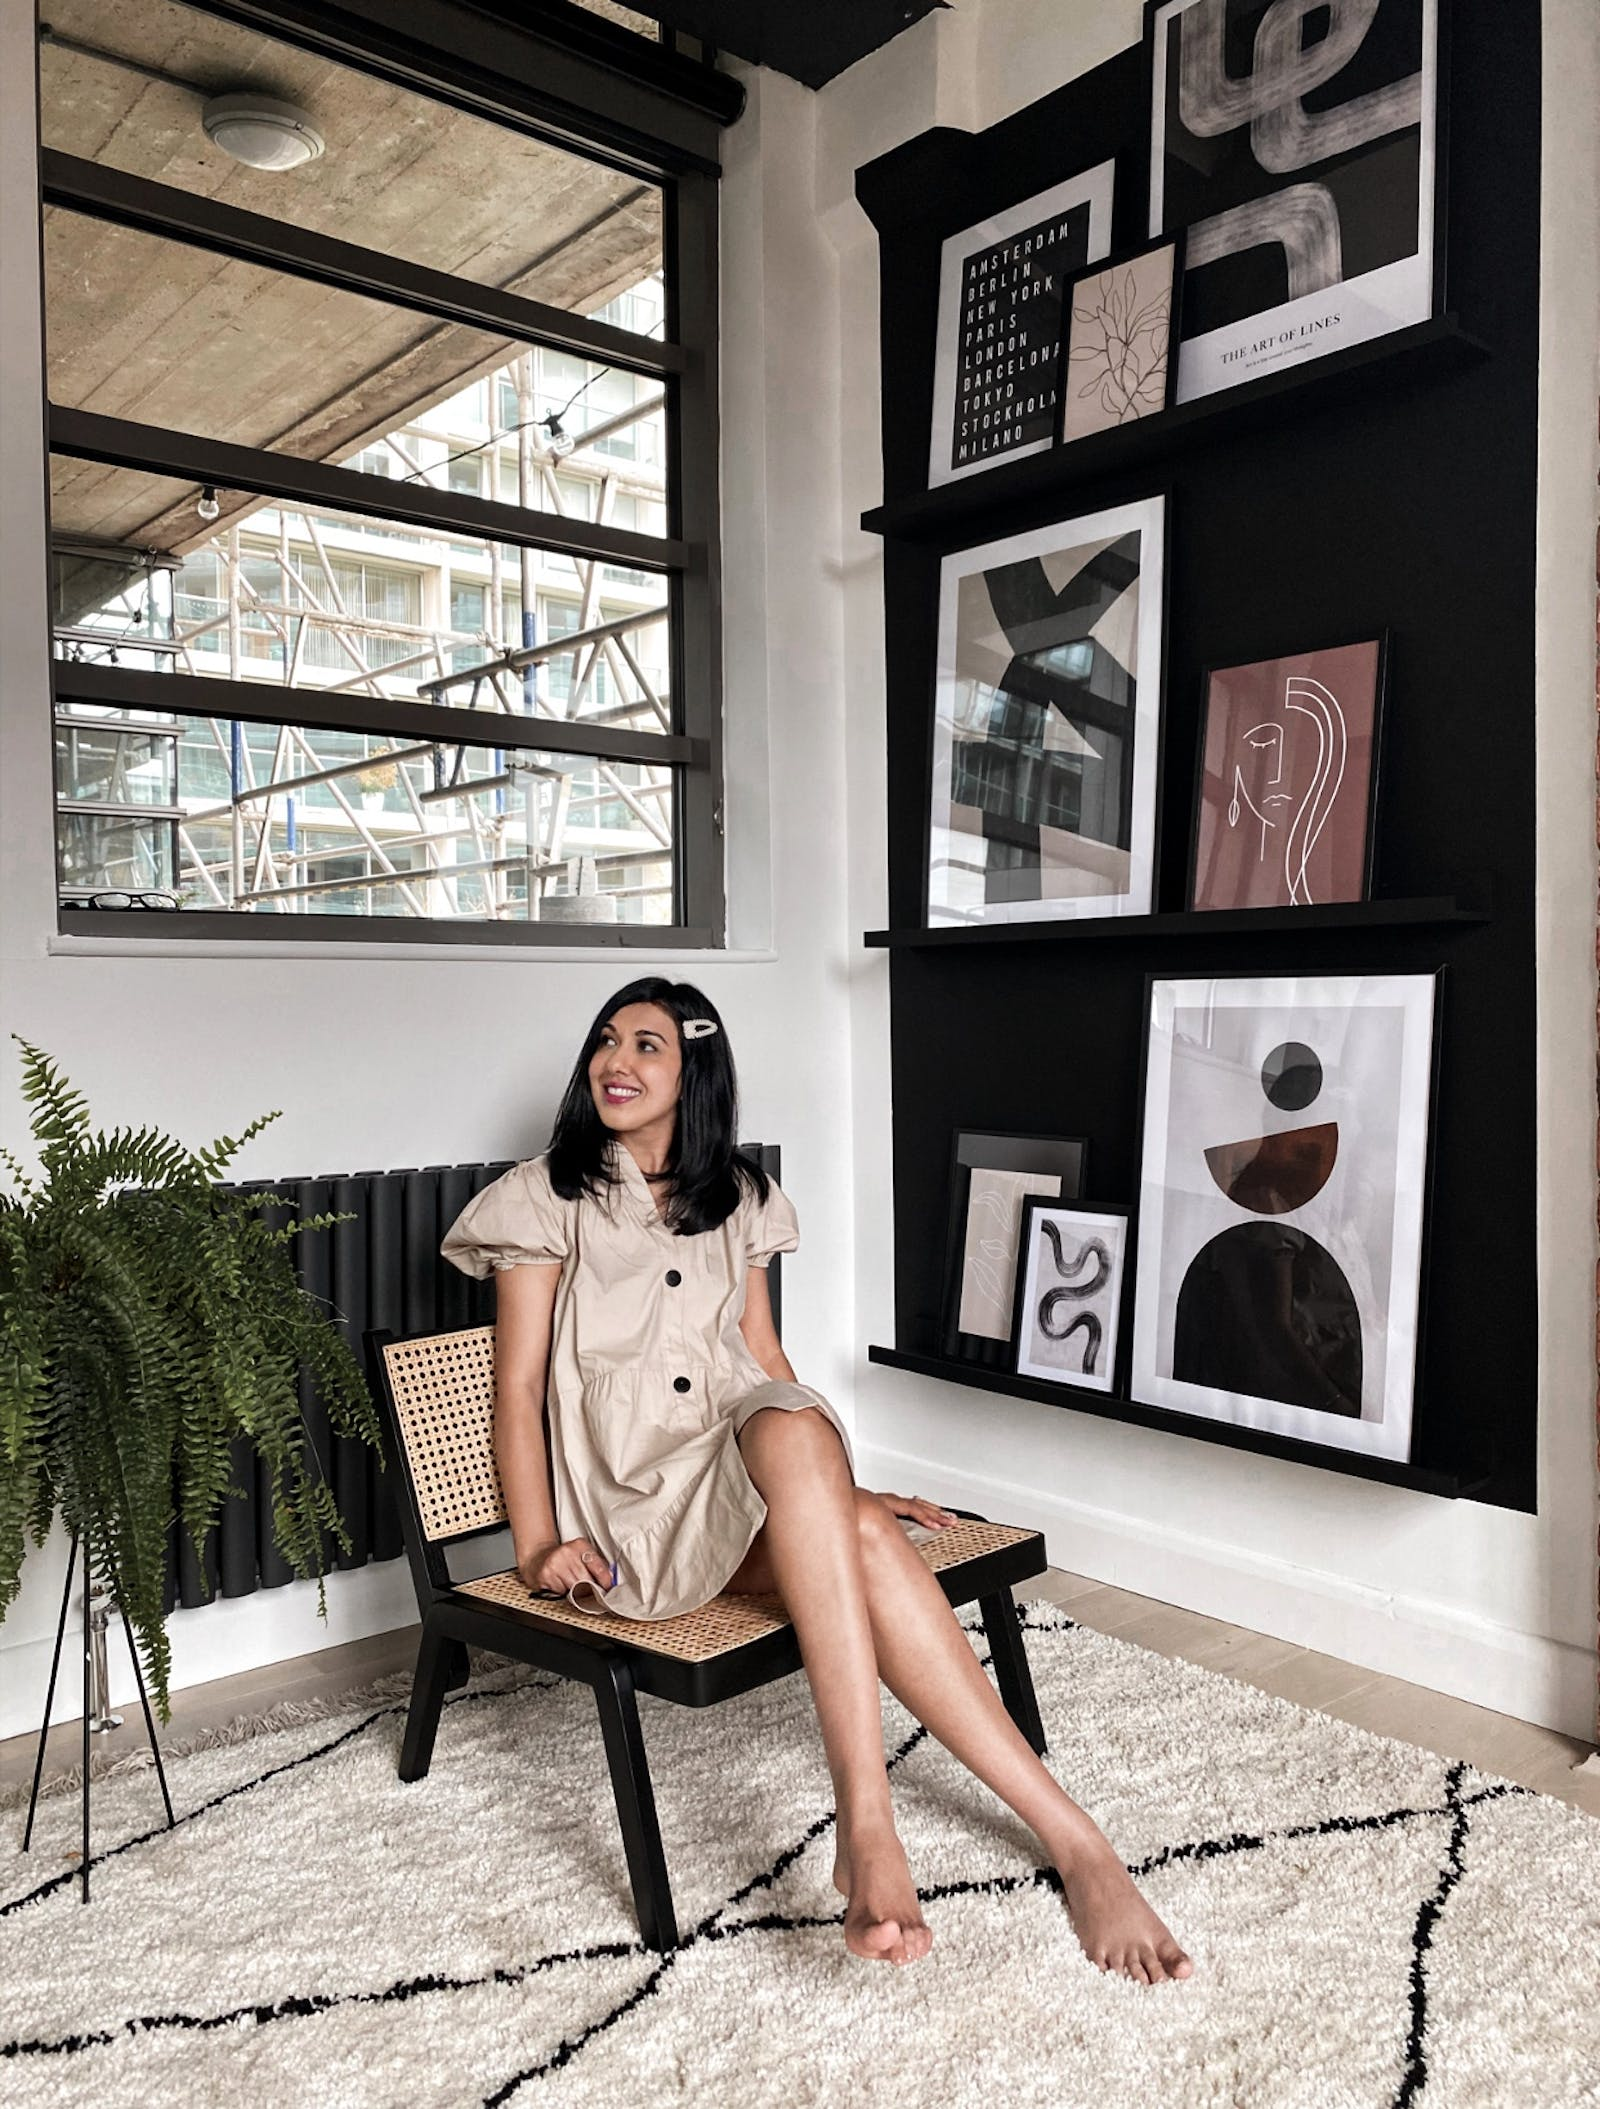 Woman with black hair sitting on a chair in front of a gallery wall